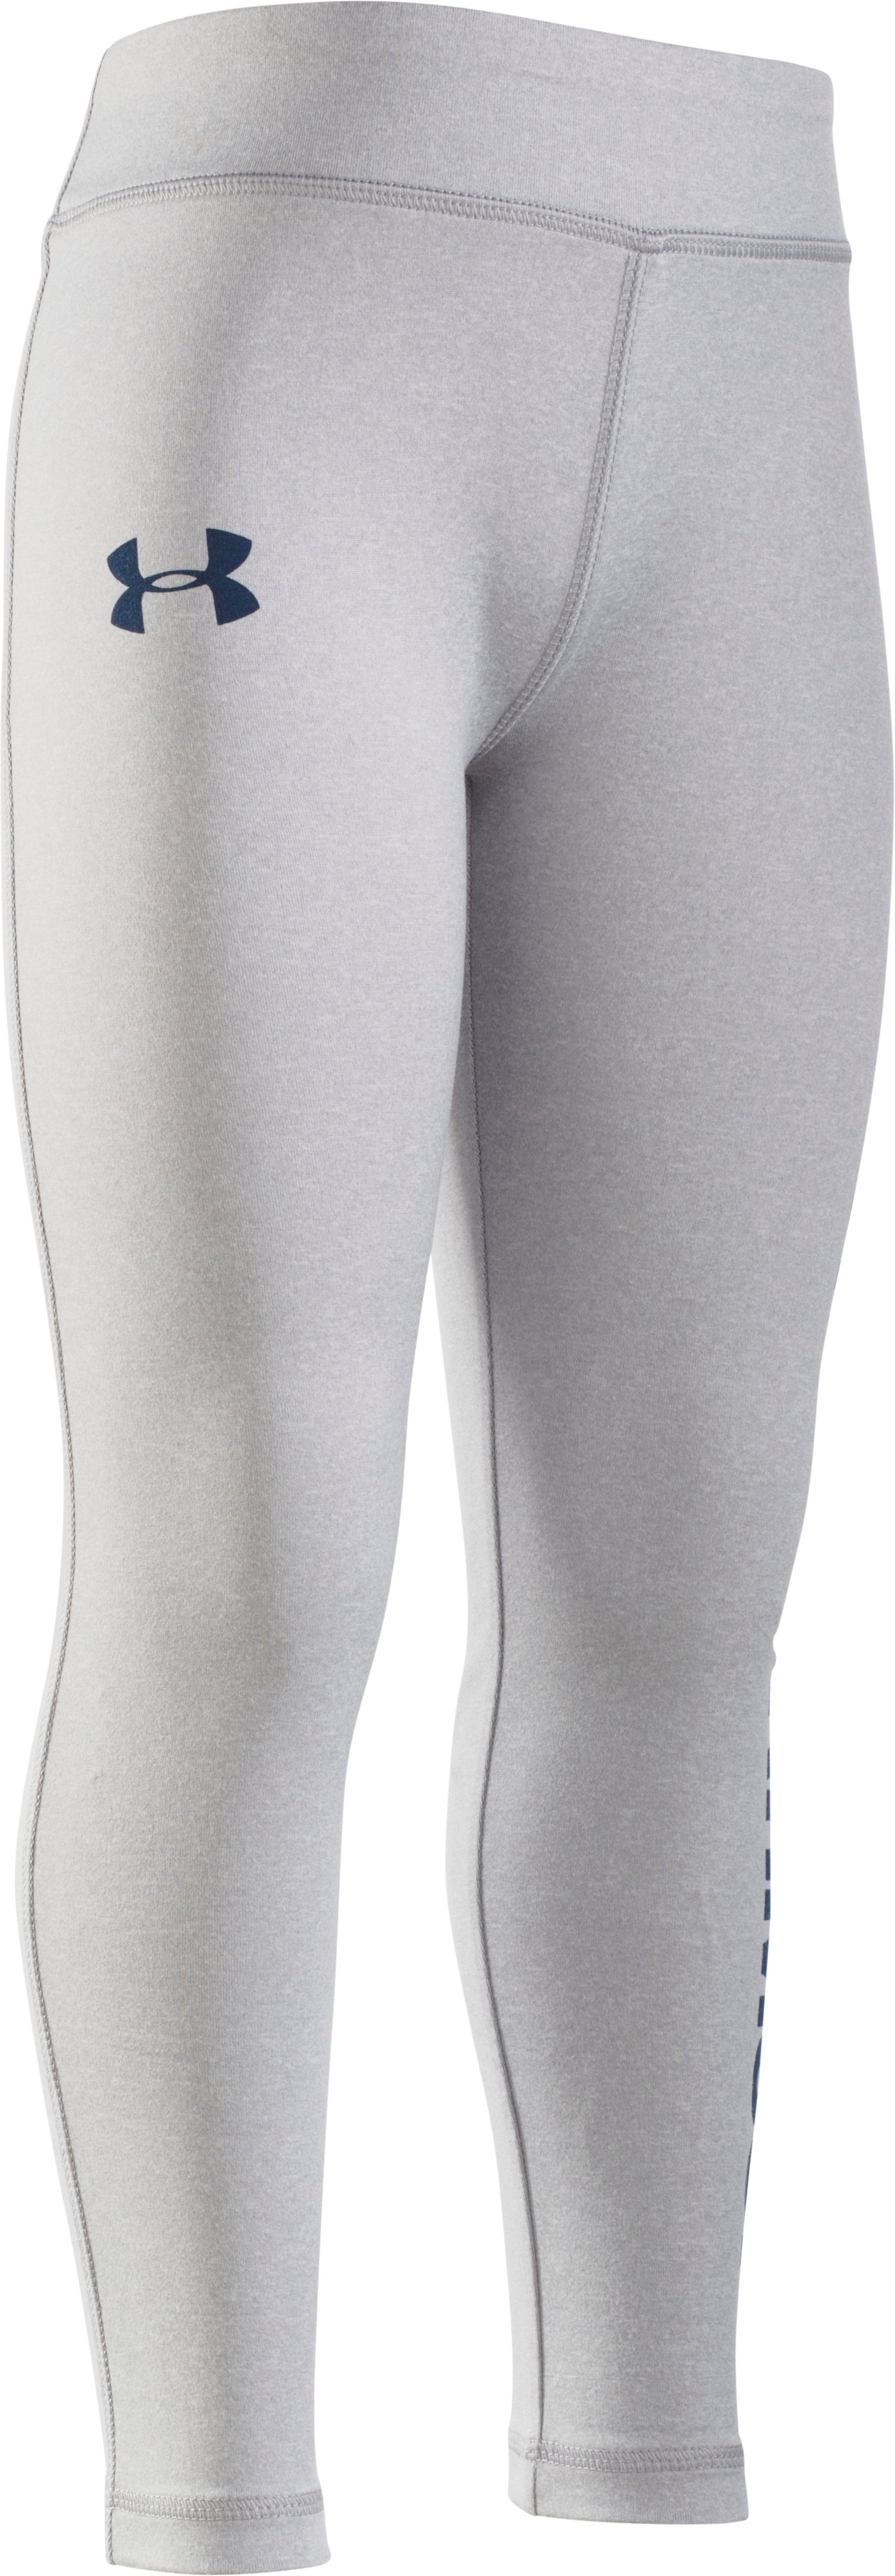 Girls' Pre-School UA Favorite Graphic Leggings, AIR FORCE GRAY HEATHER